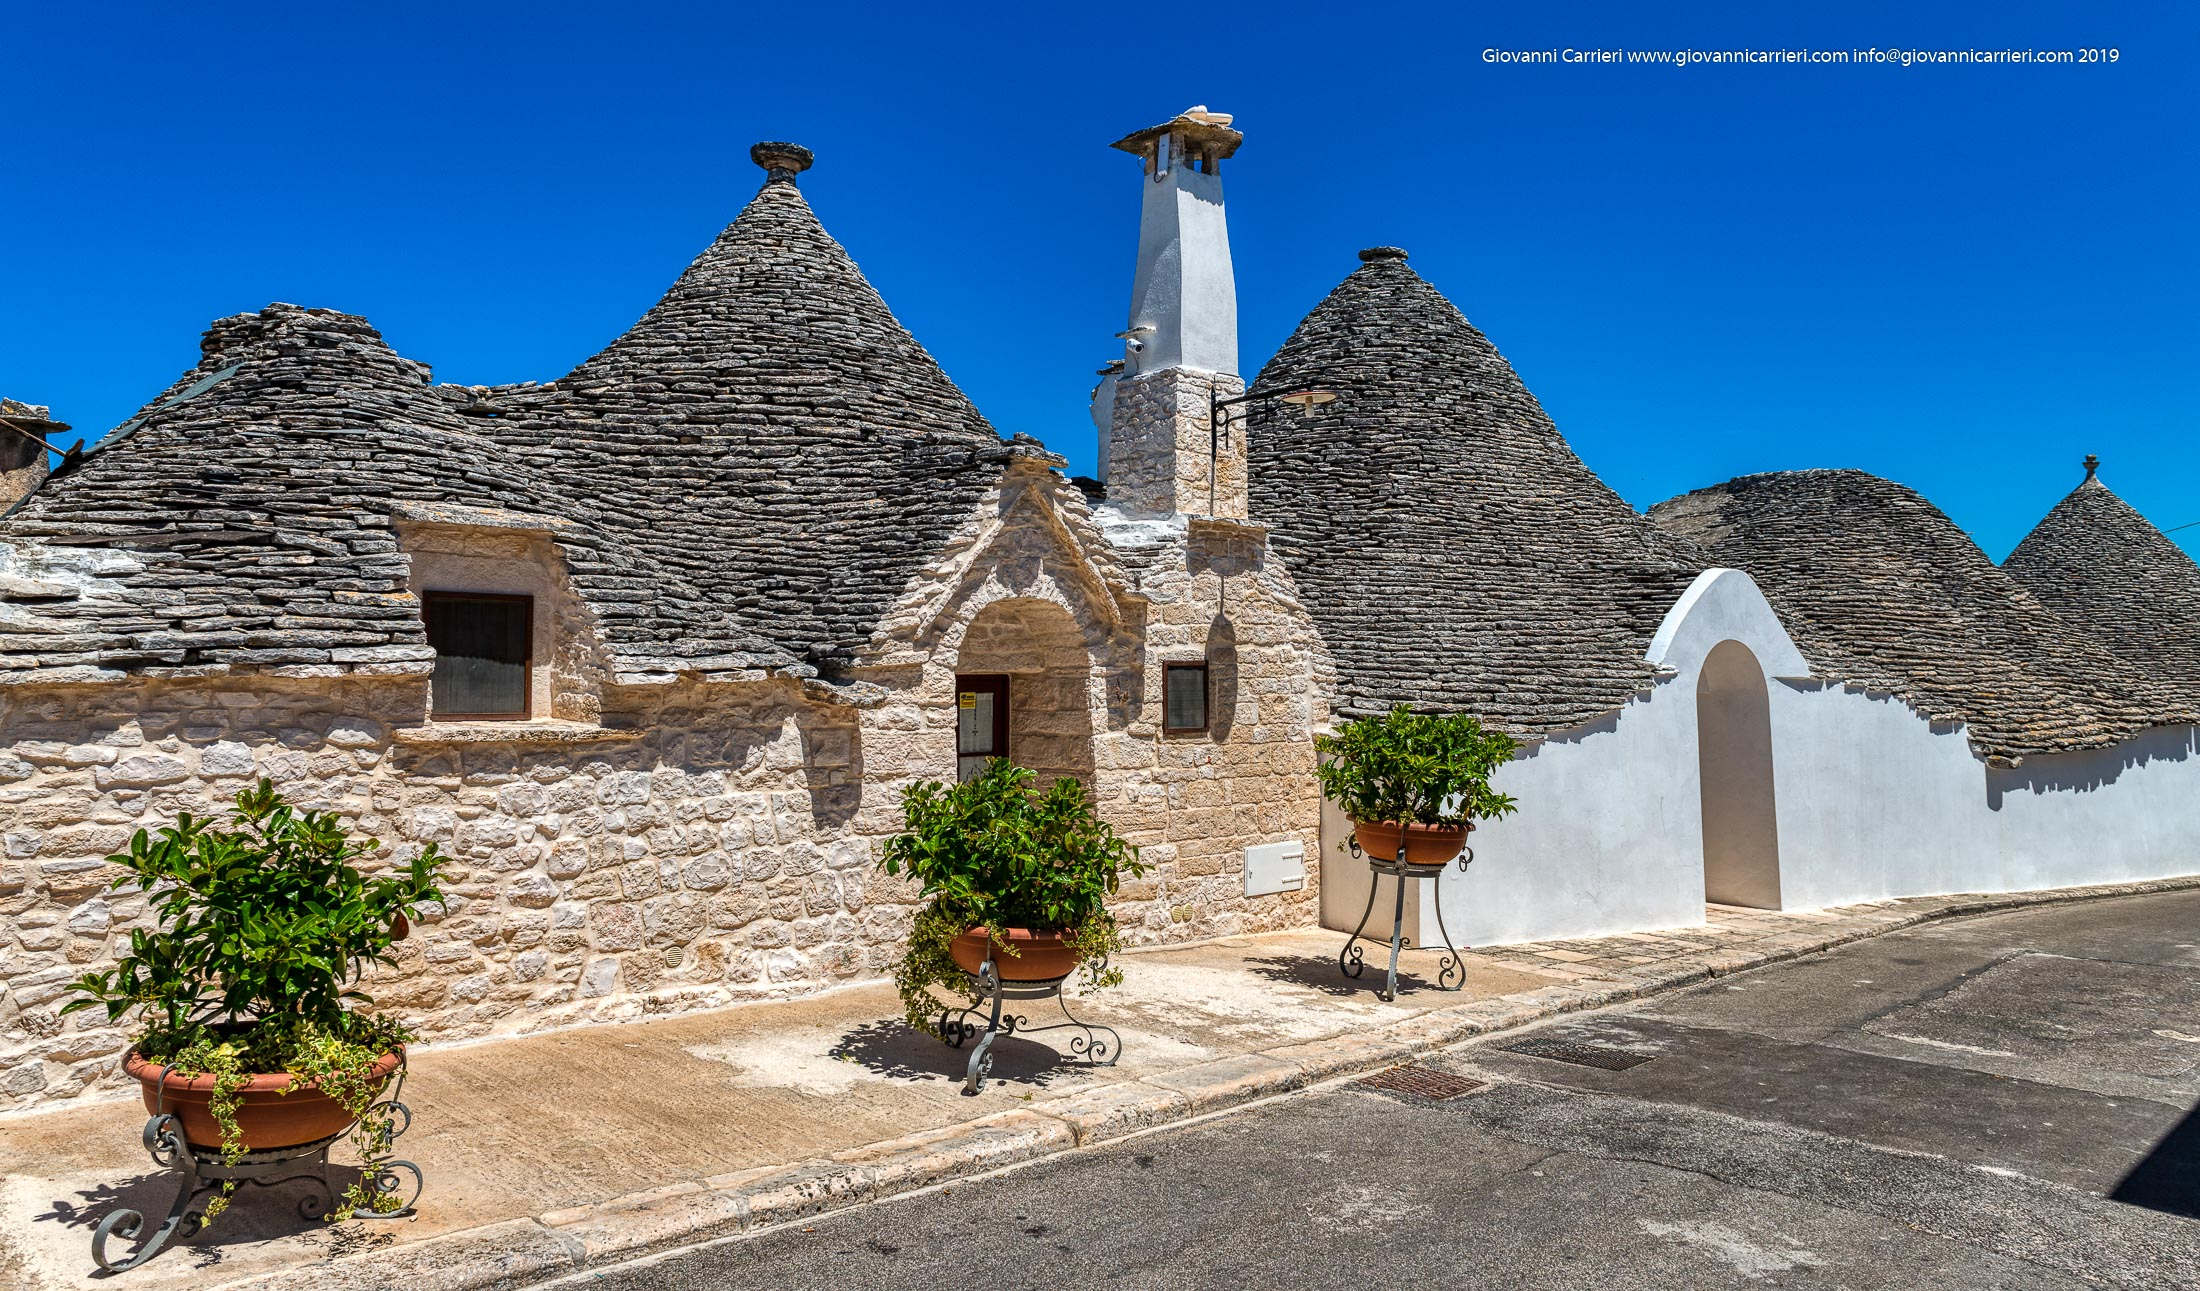 Alberobello and the trulli of the little Aia district